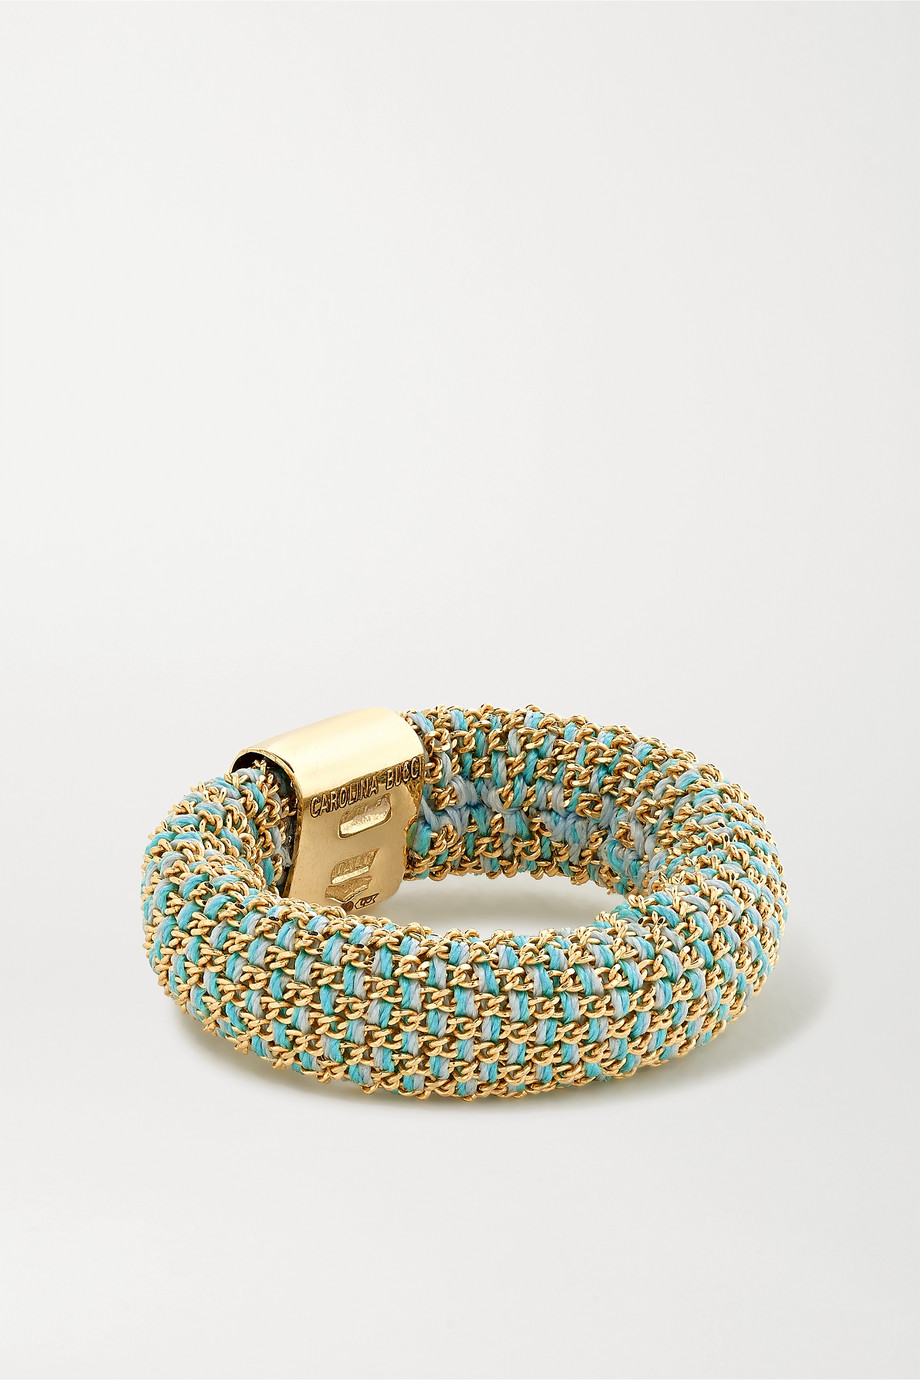 CAROLINA BUCCI Slide 18-karat gold and silk ring